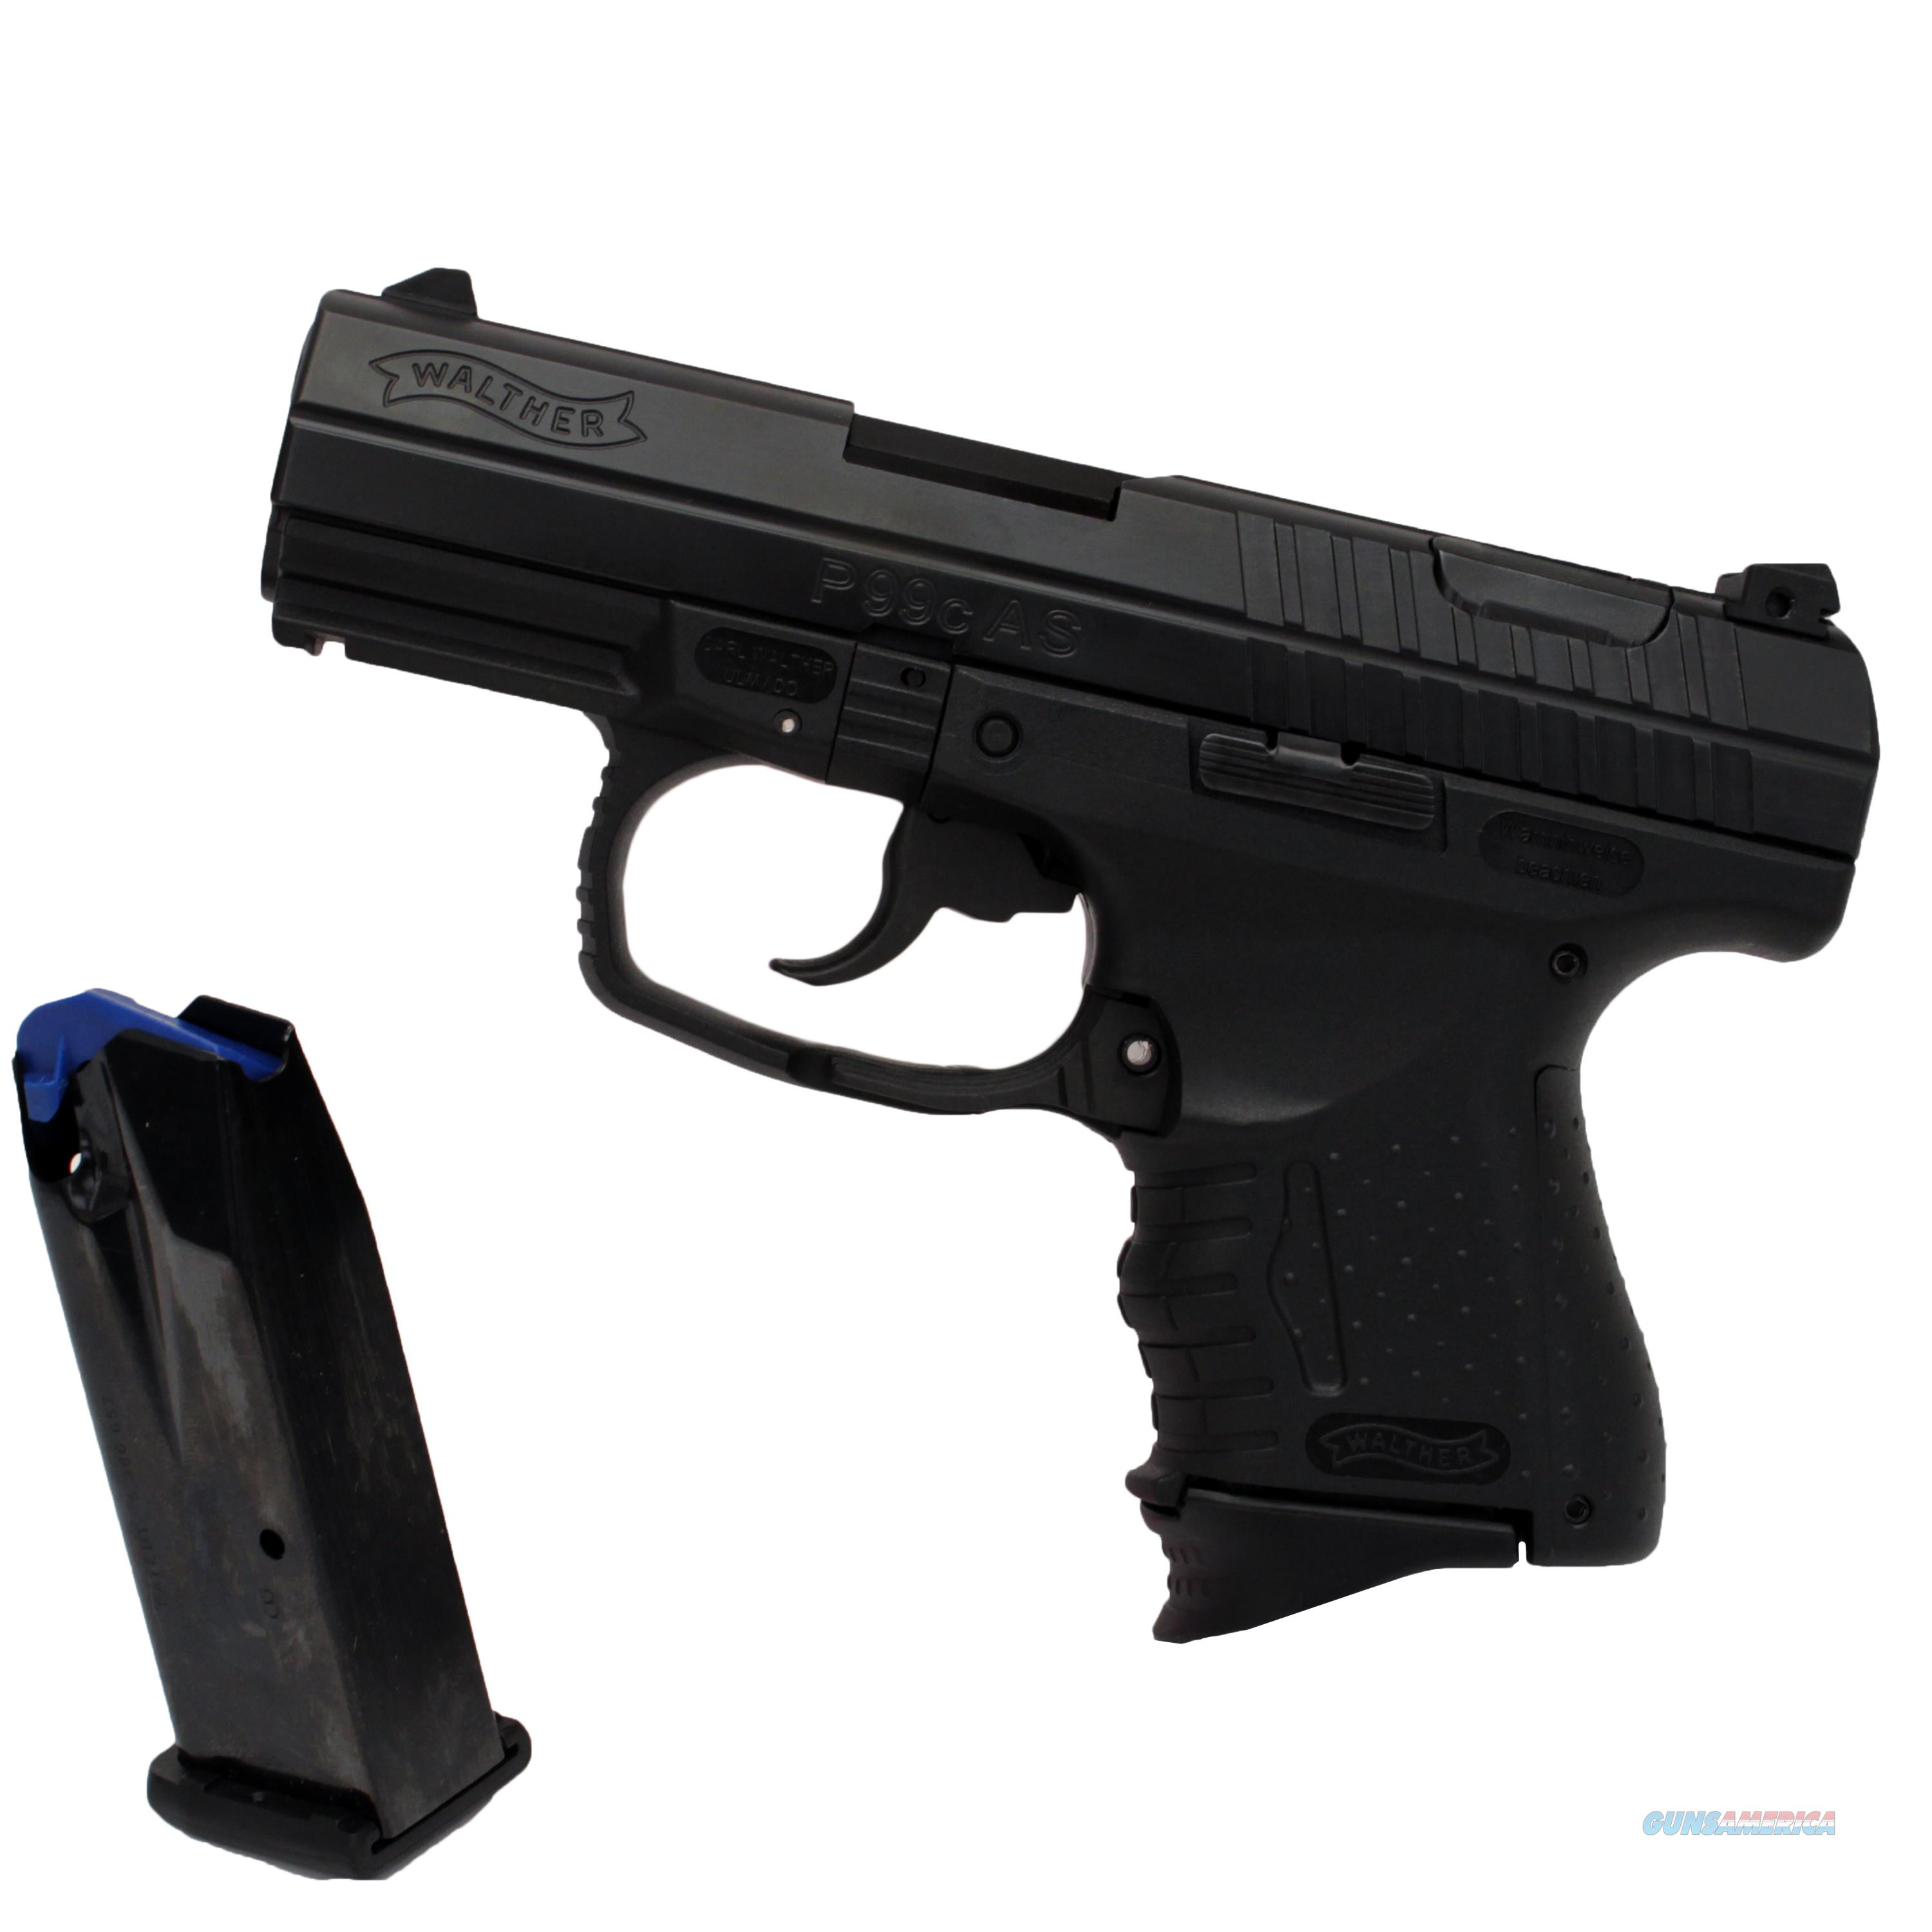 Walther Arms P99c As 2796392  Guns > Pistols > W Misc Pistols